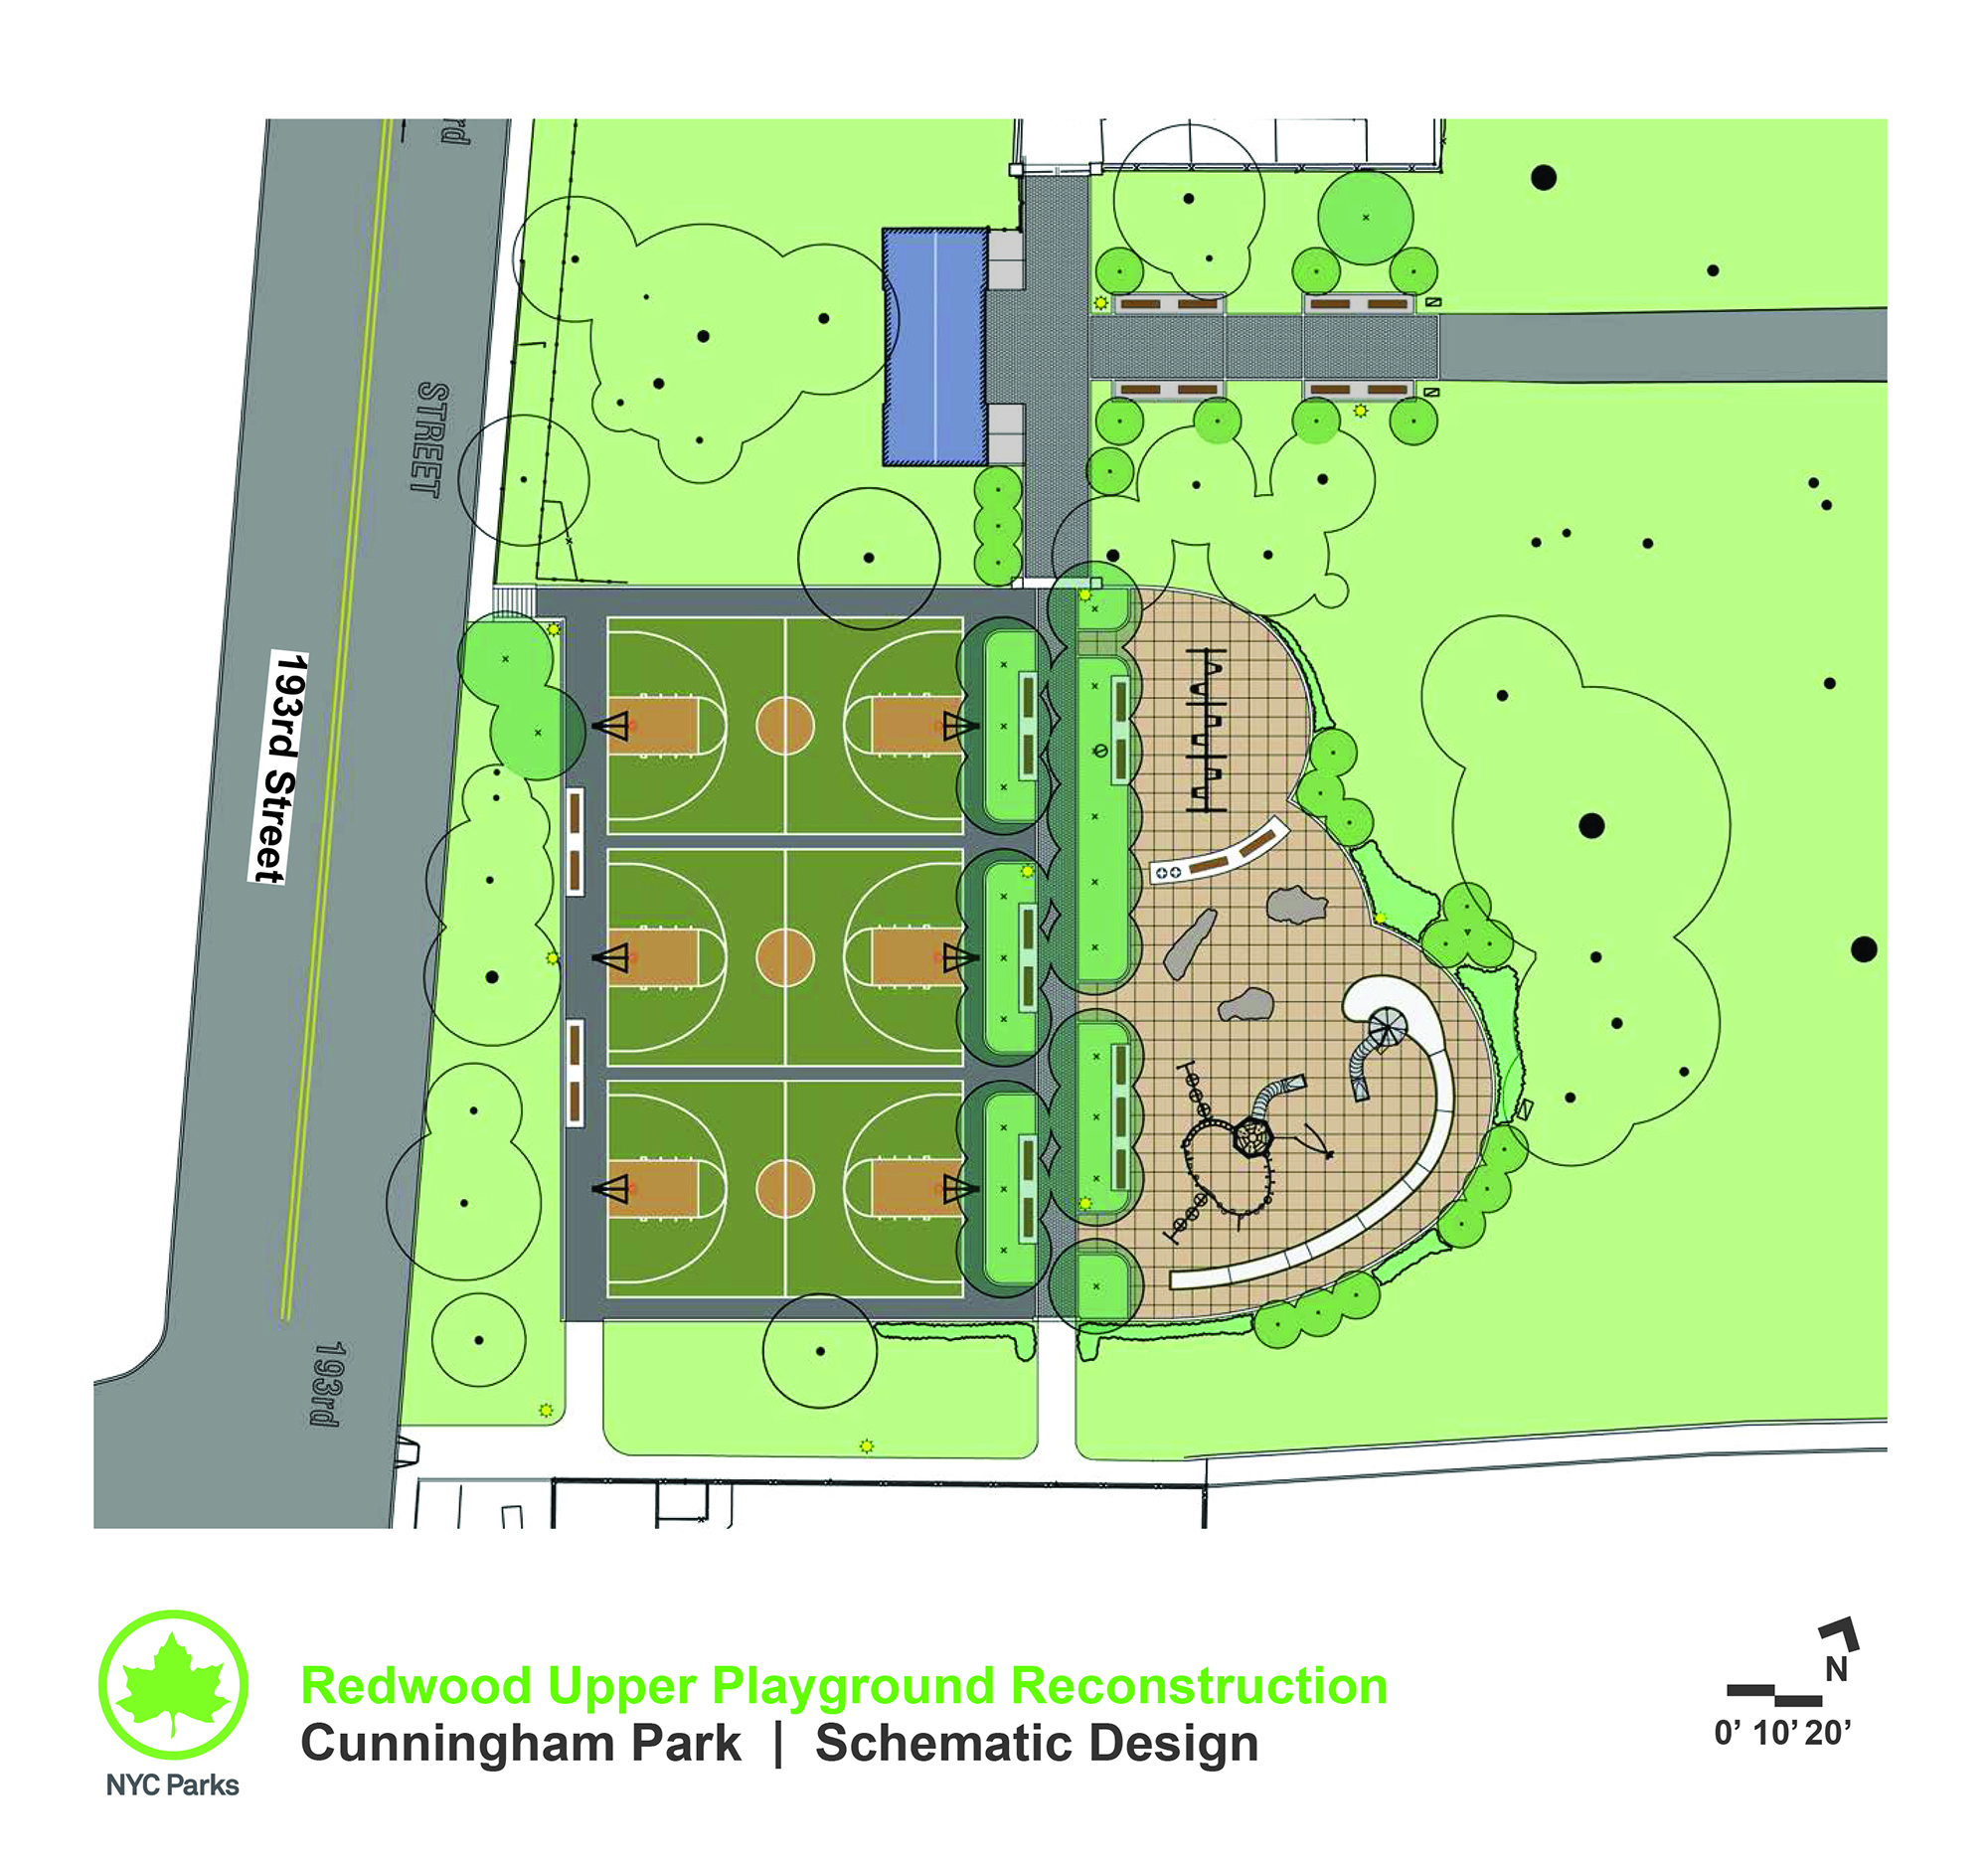 Design of Cunningham Park Redwood Upper Playground Reconstruction